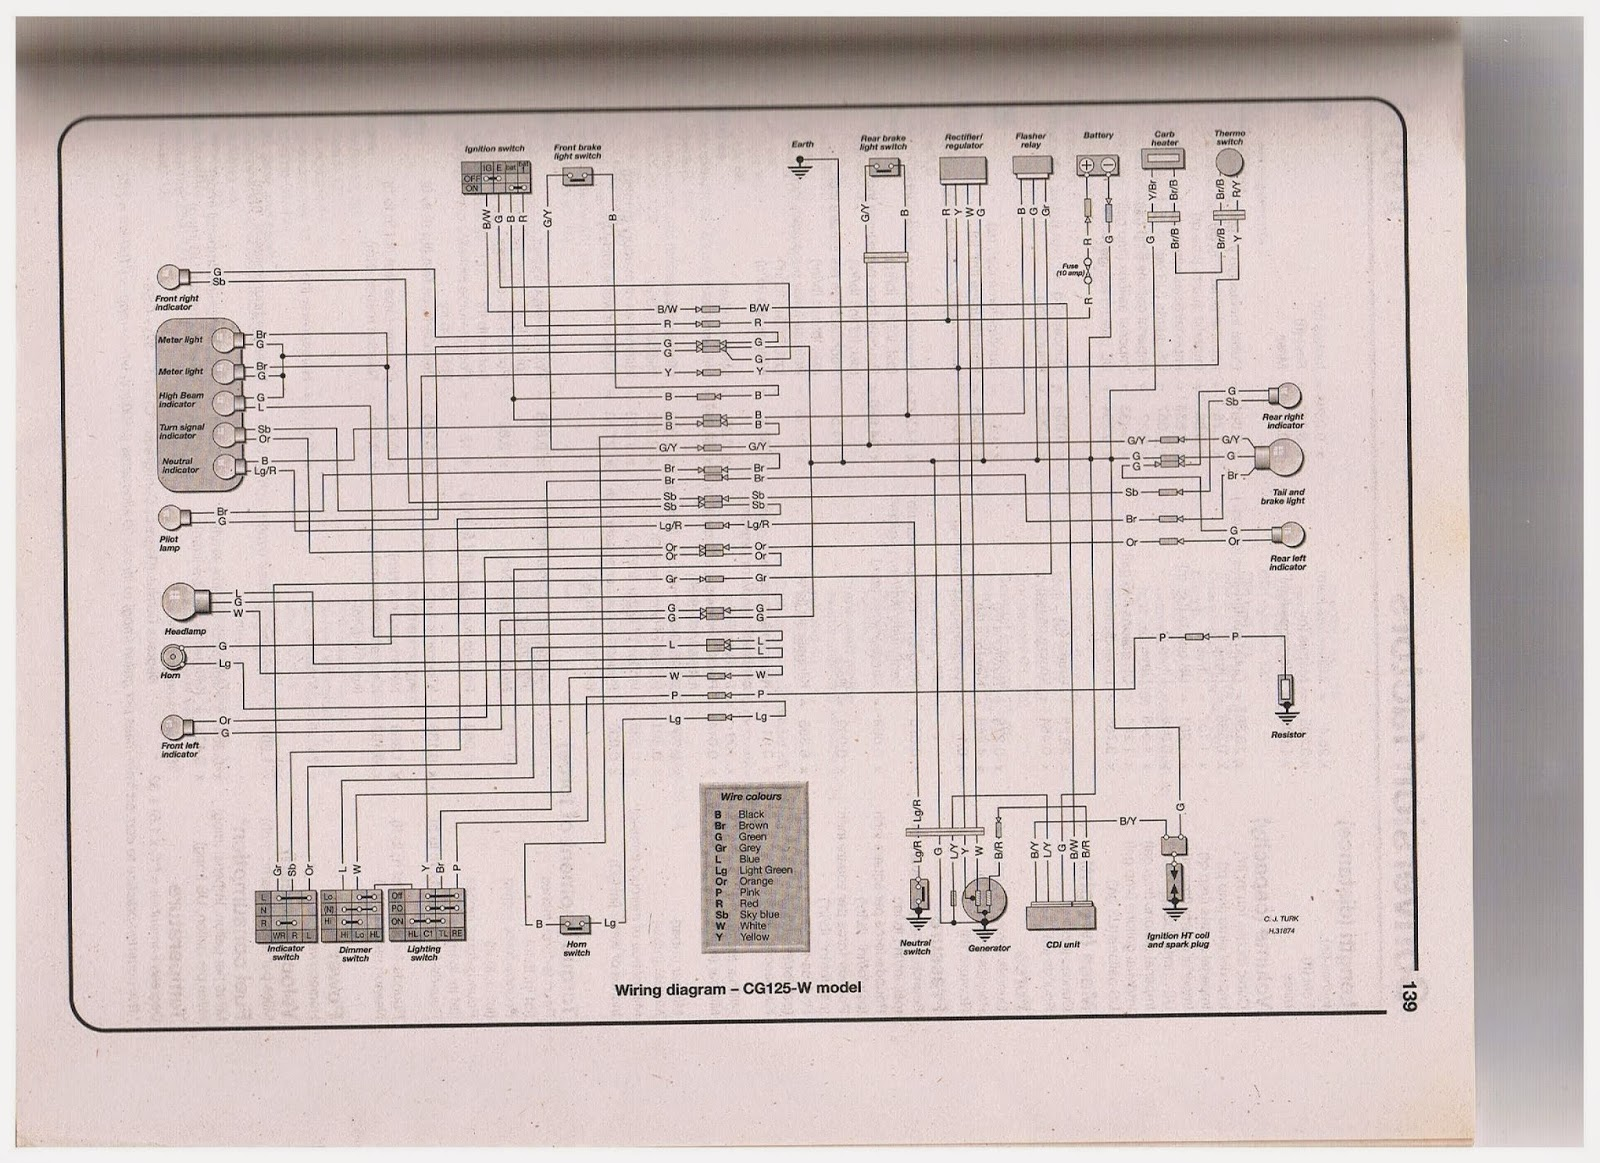 004 honda cg 125 owner blog honda cg 125 wiring diagrams and honda c90 wiring diagram 6v at soozxer.org